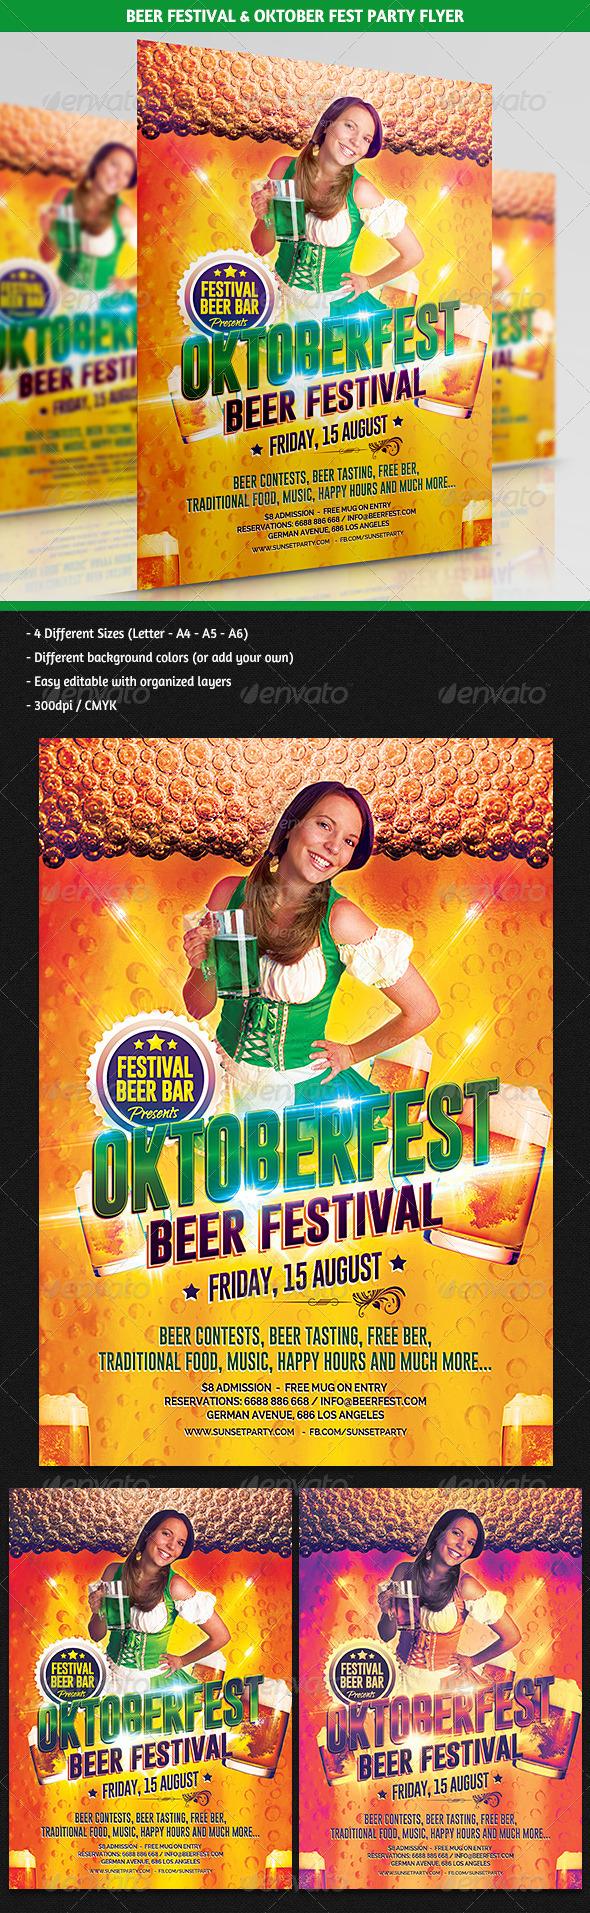 GraphicRiver Beer Festival & Oktoberfest Party Flyer 5699798